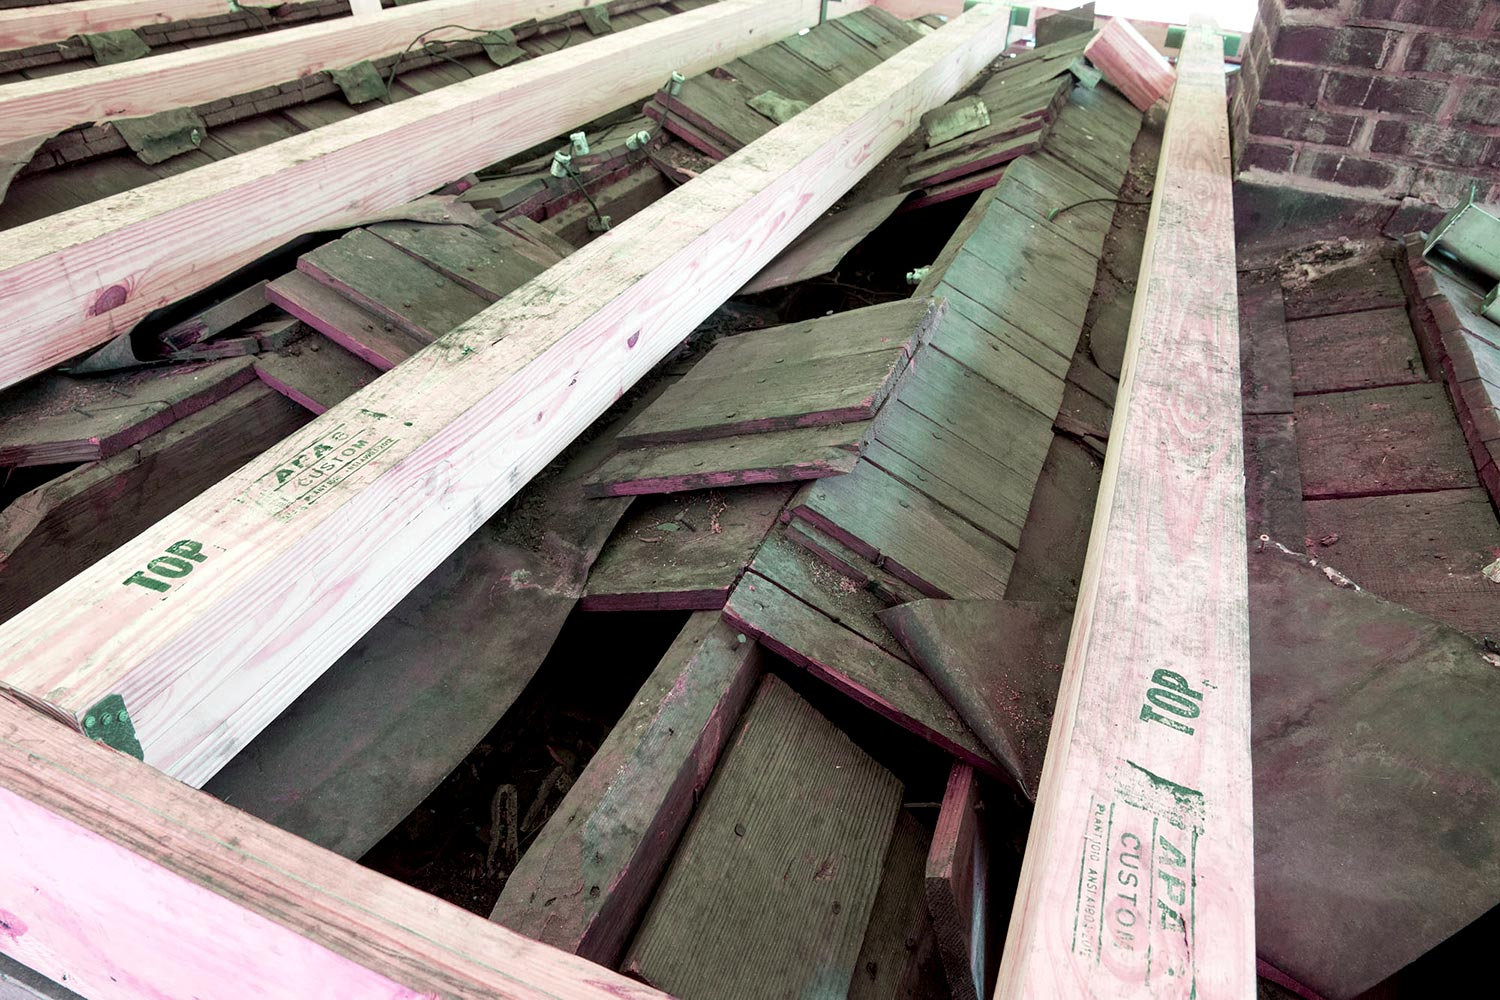 Thomas Jefferson designed serrated roofs with overlapping boards and metal valleys to channel the water.